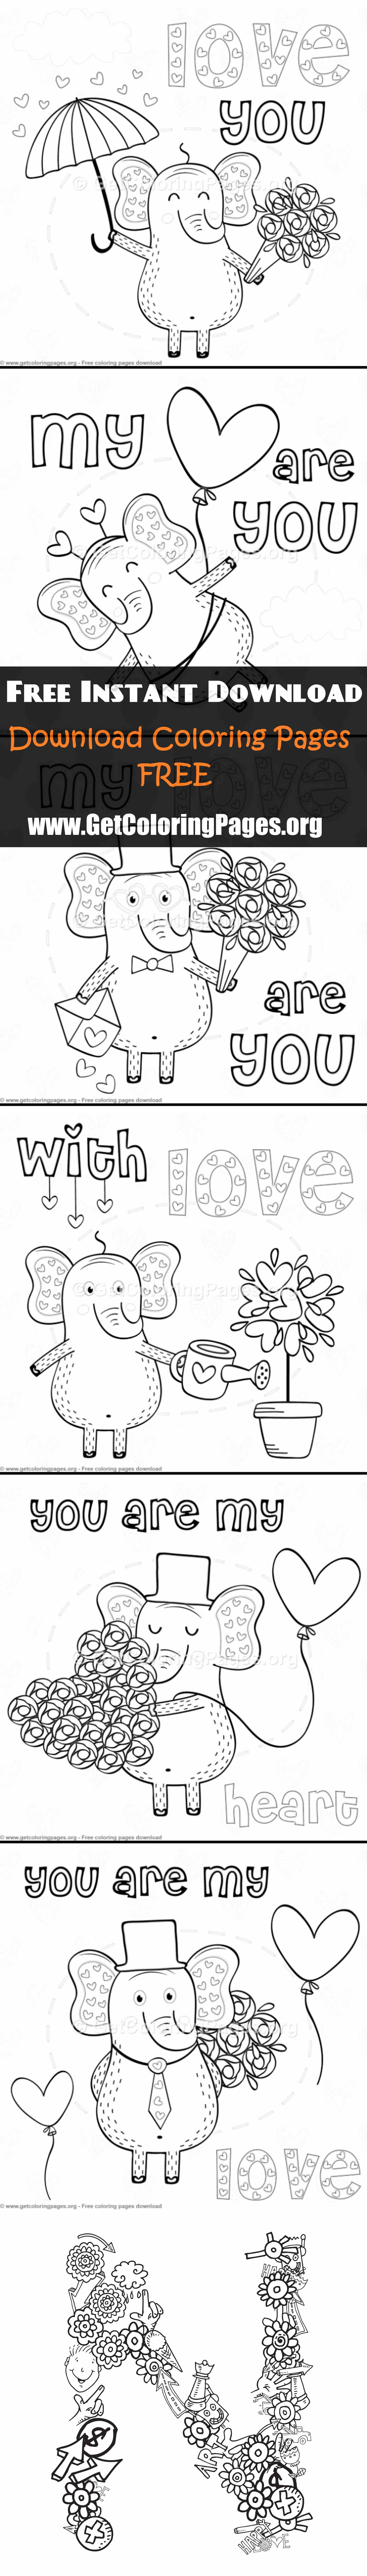 Elephant love coloring pagecute elephant coloring pageselephant